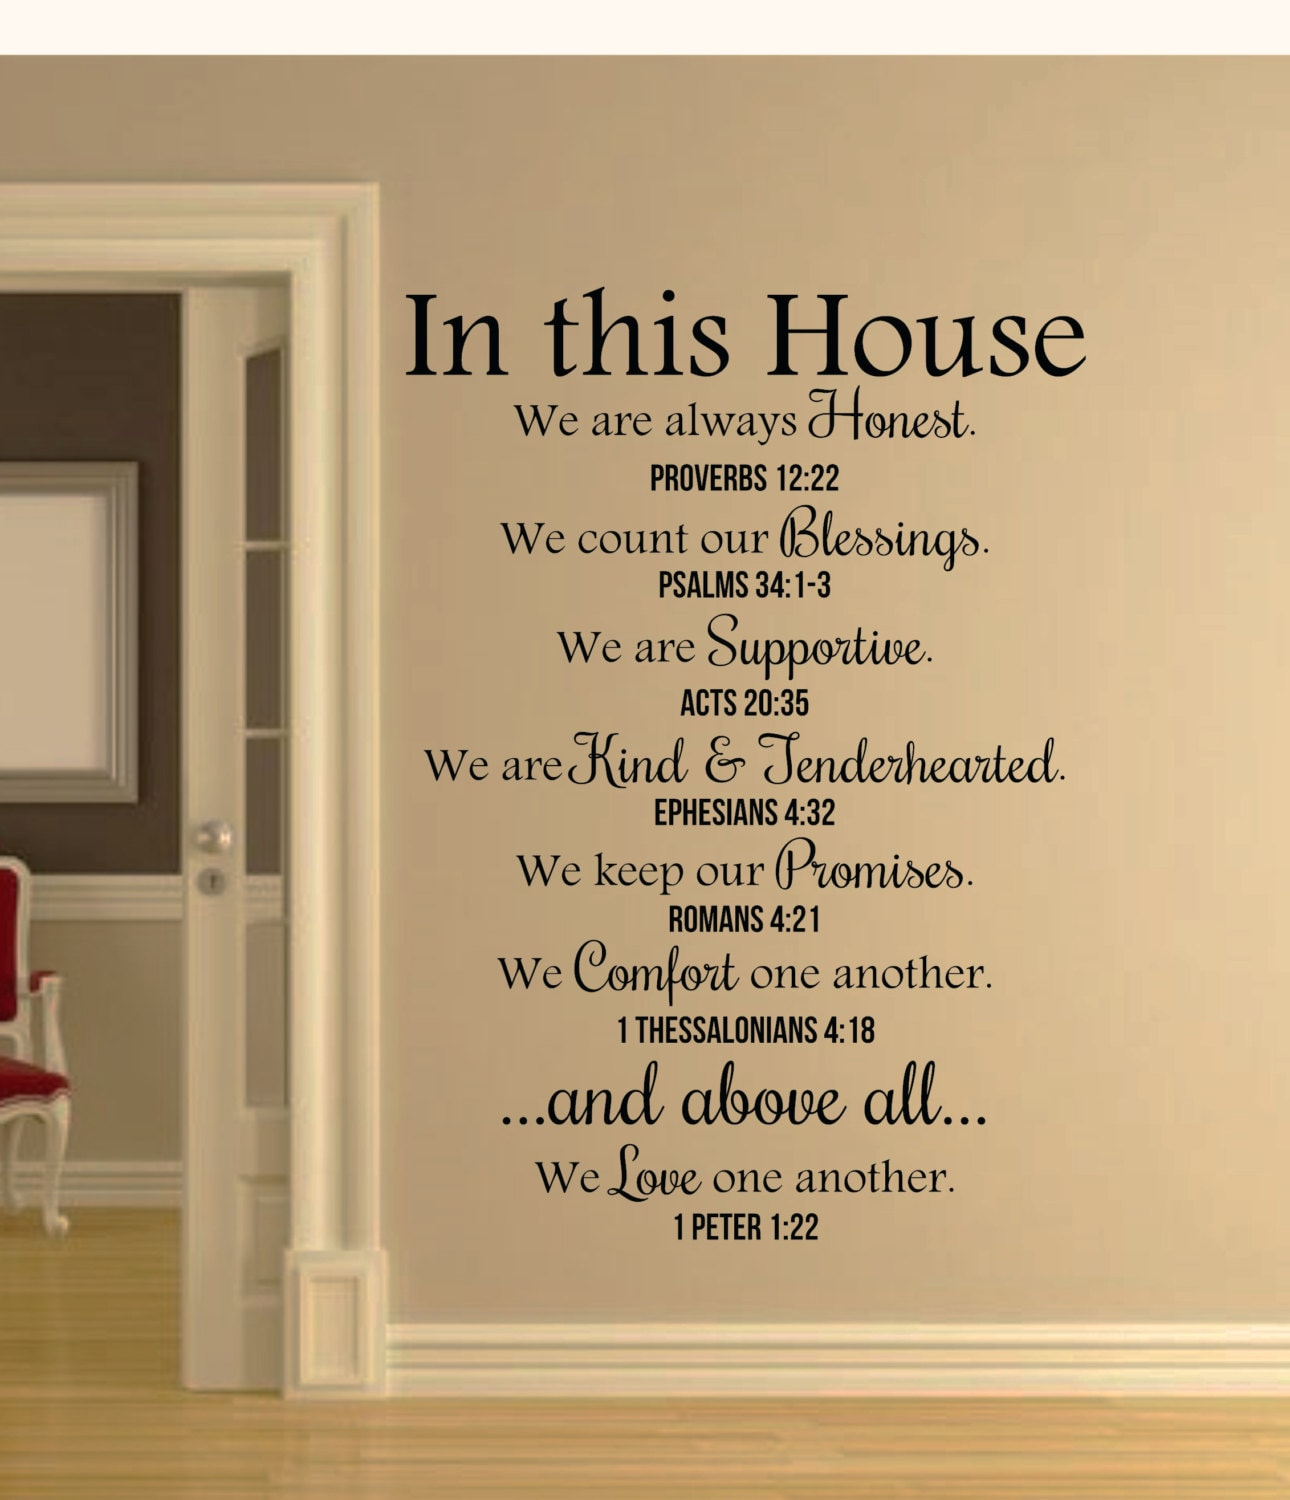 In this House Bible Verses Wall Decal Quote-Christian Wall